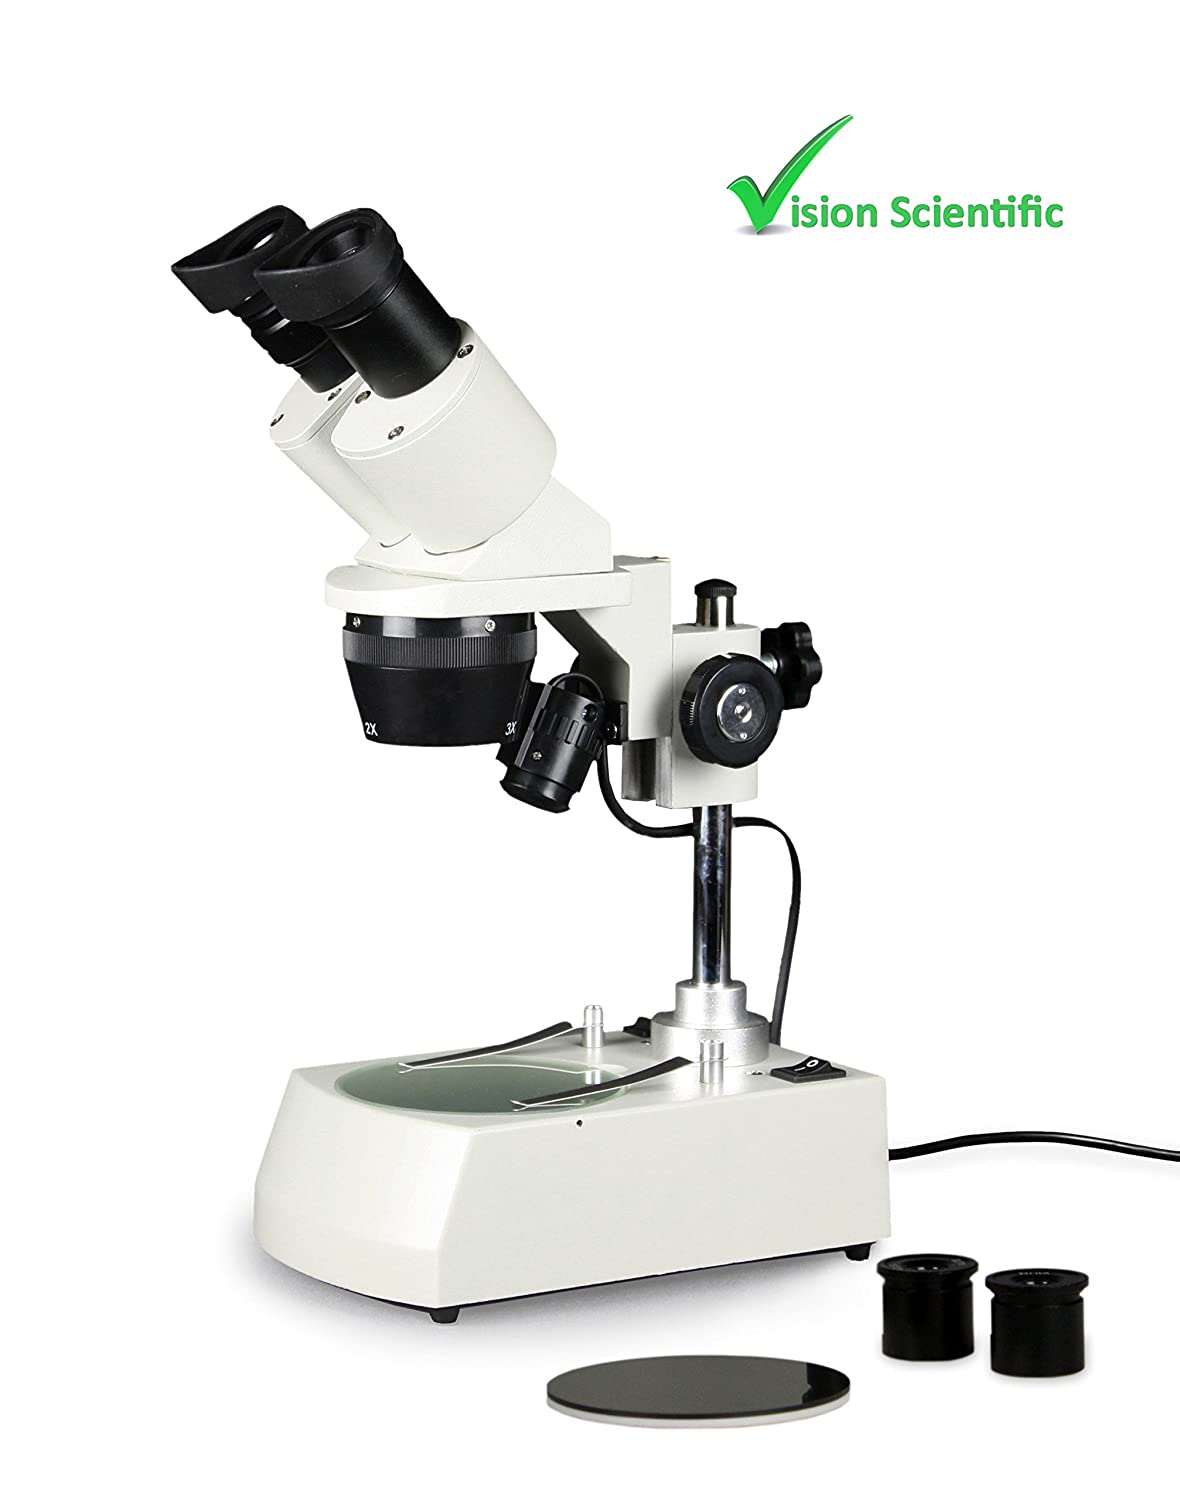 Image of Vision Scientific VMS0002-LD-234-ES2 Tri-Power Binocular Stereo Microscope, 2X, 3X, 4X Objectives, Pair of 10x and Pair of 20x WF Eyepieces, 20x, 30x, 40x, 60x, 80x Magnification, Top and Bottom LED Compound Binocular Microscopes